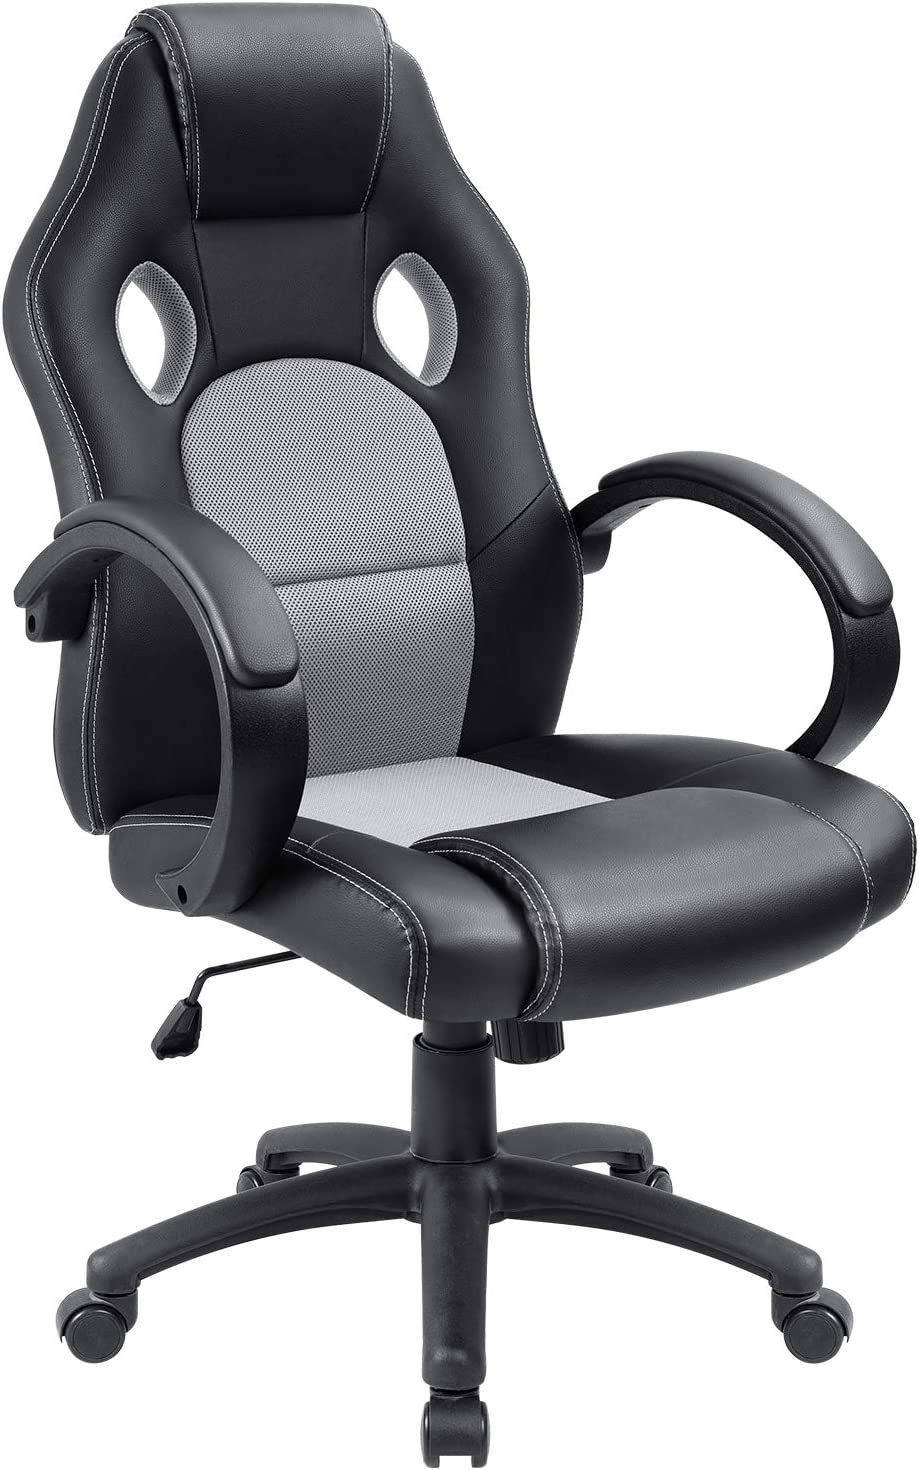 Furmax High Back Office Gaming Chair Computer Desk Chair,Ergonomic Adjustable Racing Chair,Task Swivel Executive Chair with Lumbar Support Gray